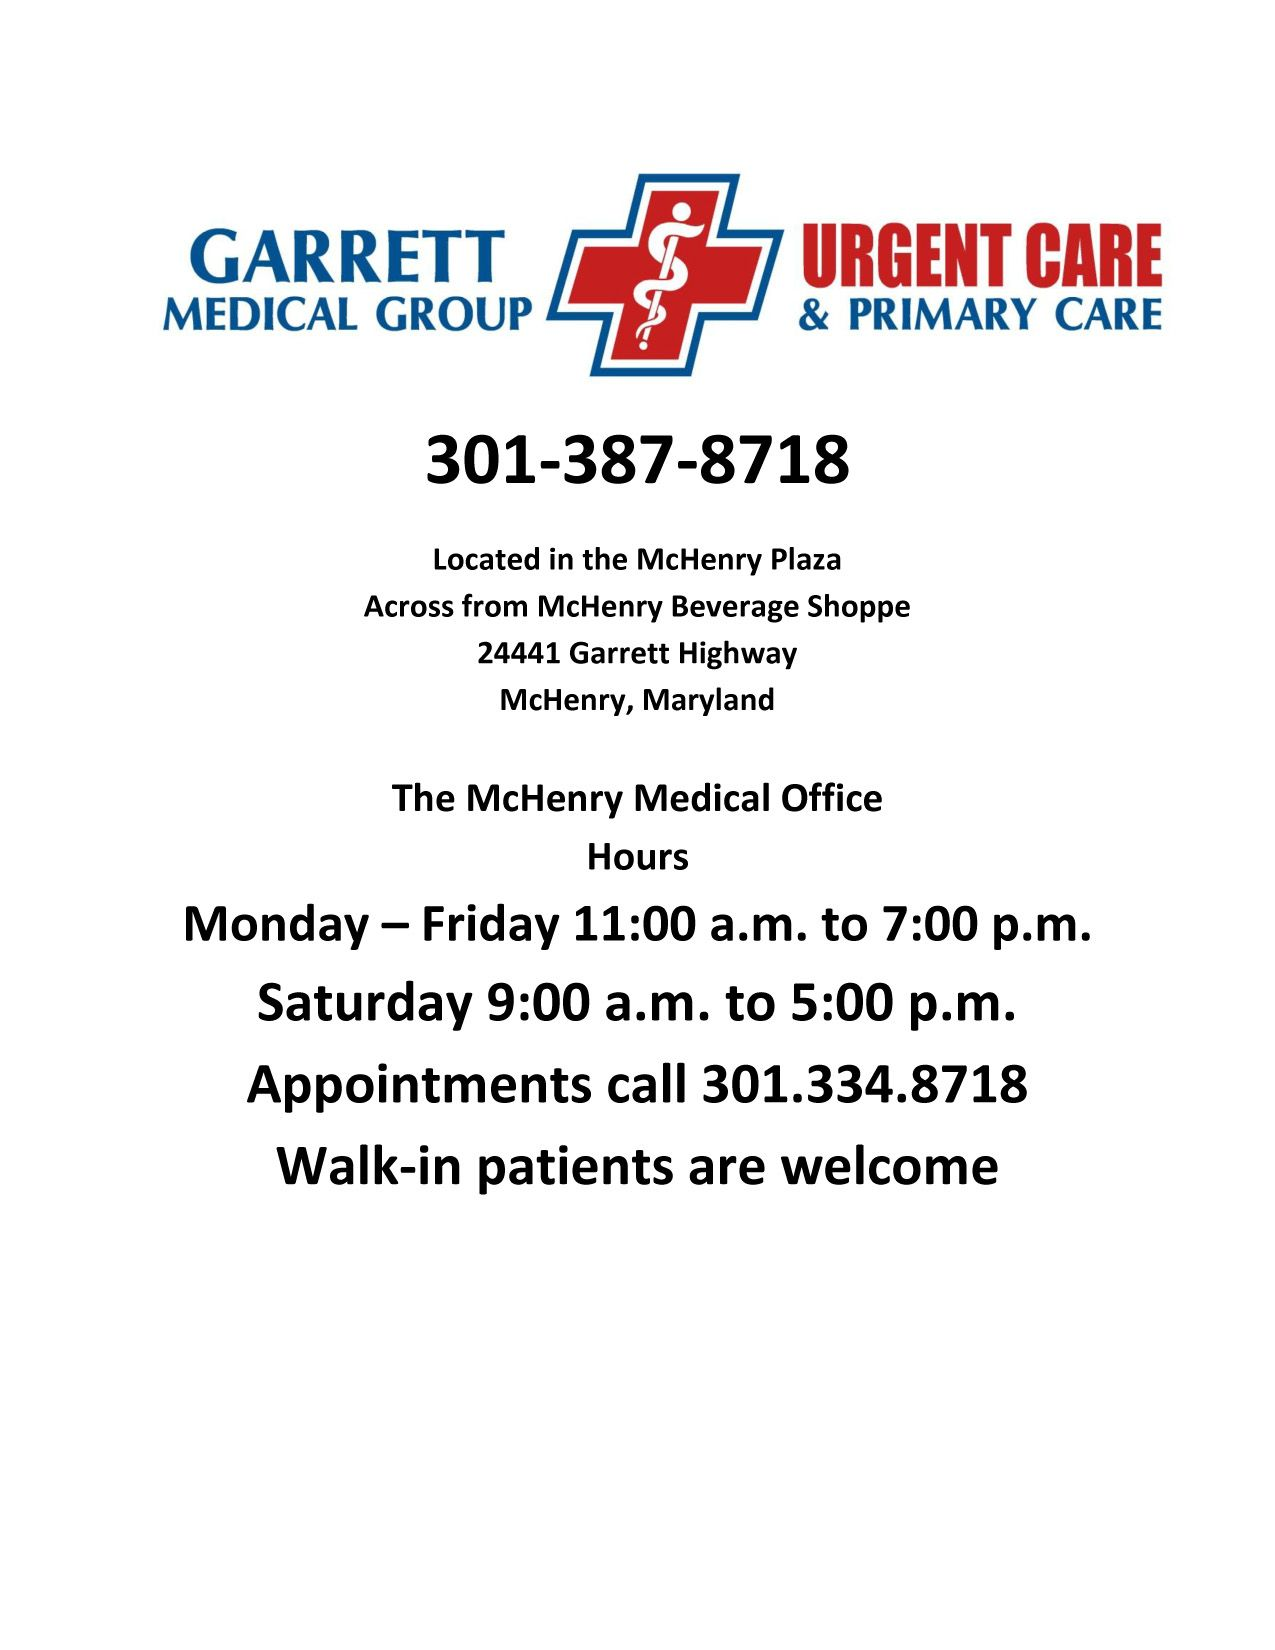 Garrett Medical Group & Urgent and Primary Care | Urgent ...